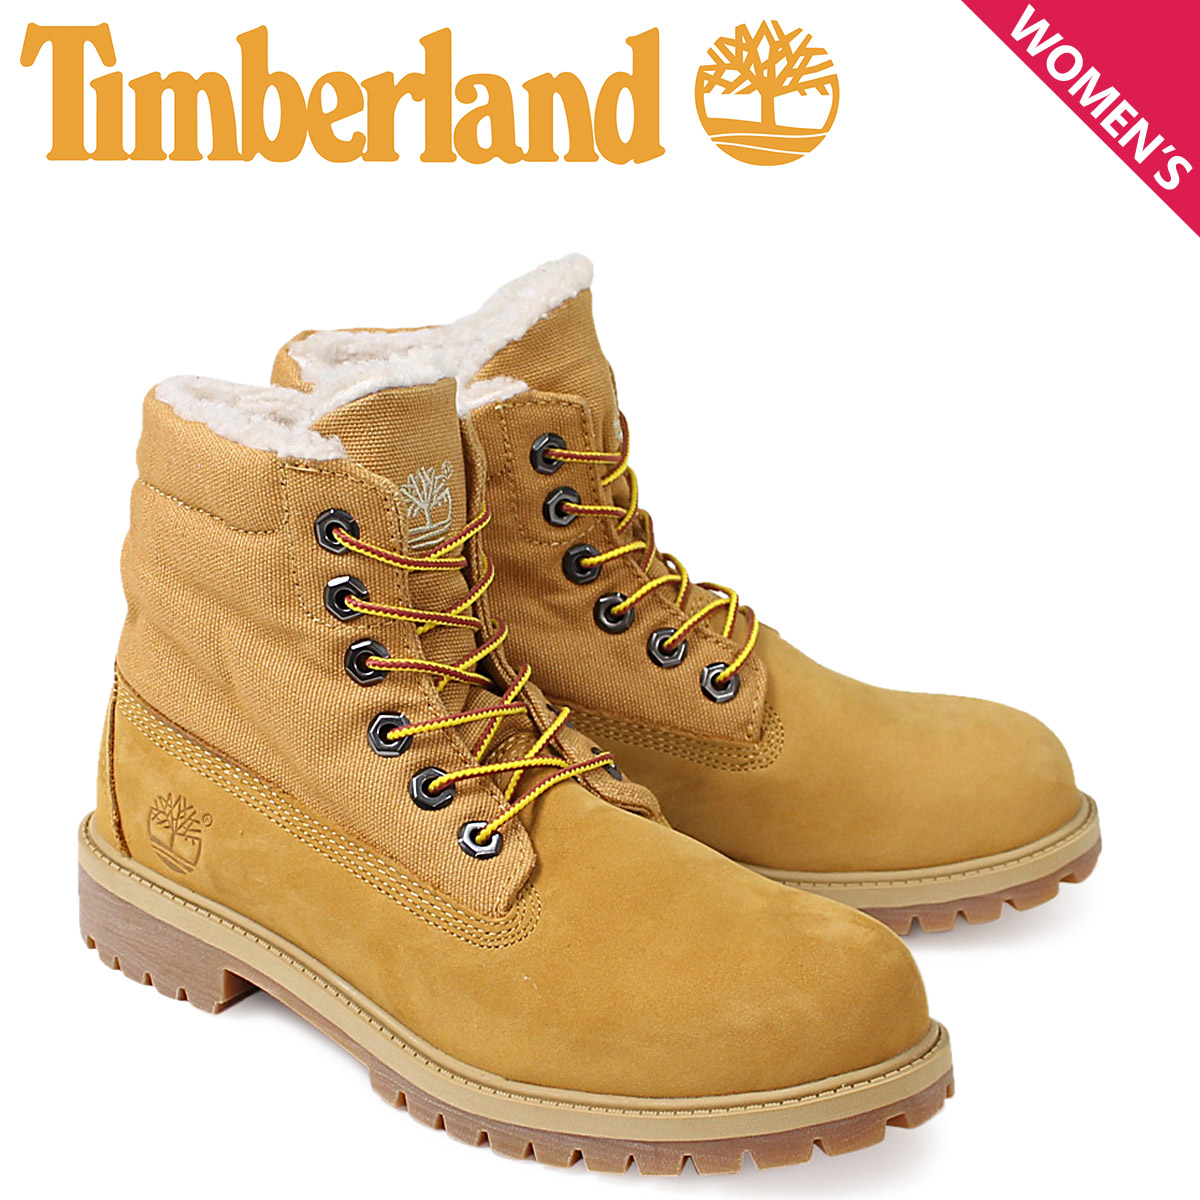 741a9365950e SneaK Online Shop  Timberland Timberland women s roll top boots ...